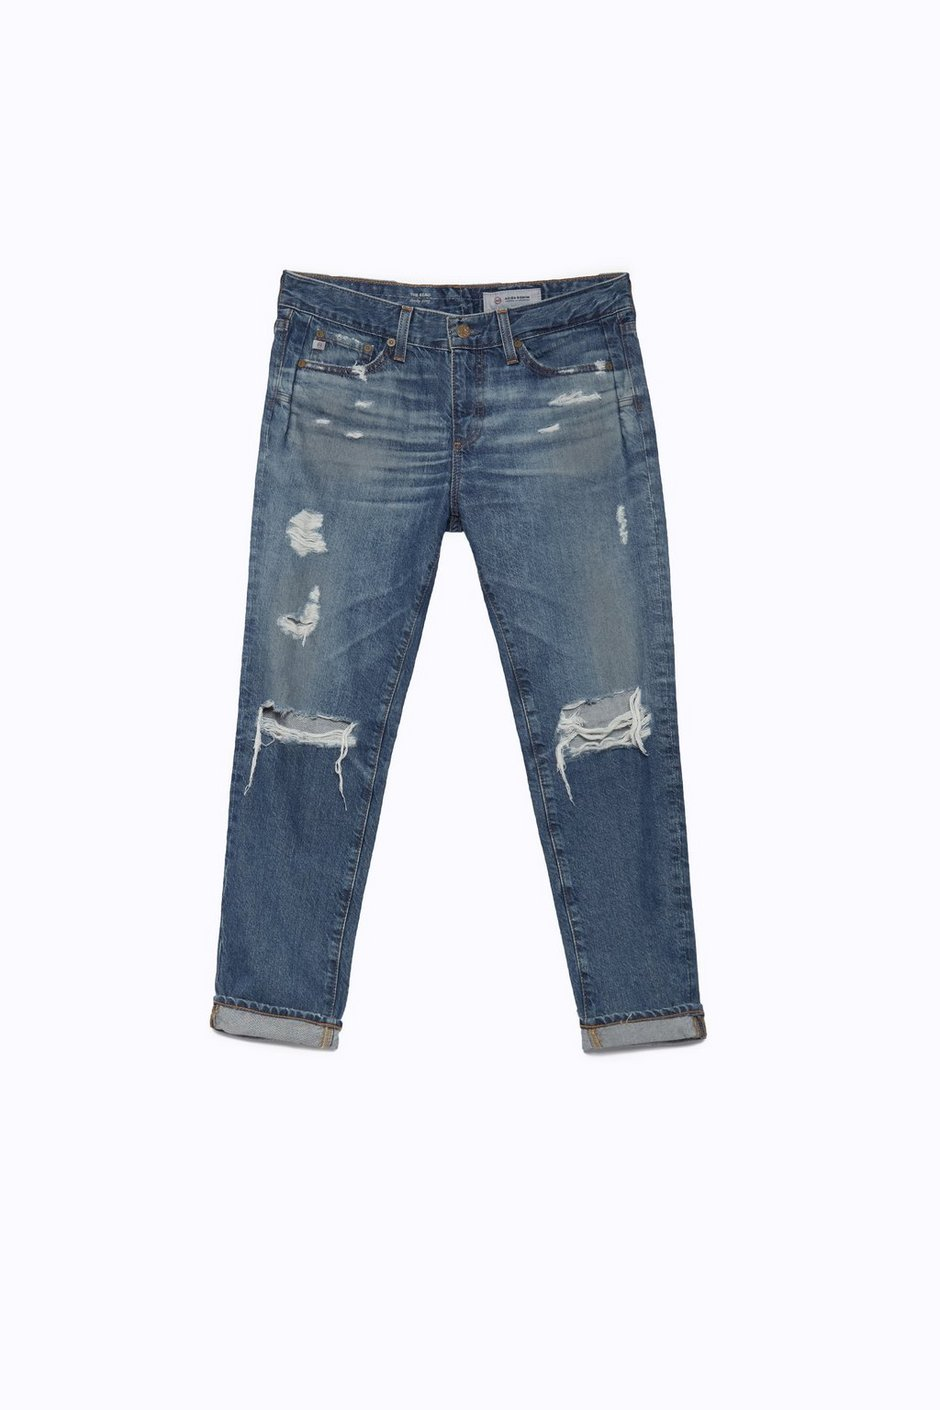 The Beau In 16 Years Hourglass Sand Boyfriend Jeans AG Jeans